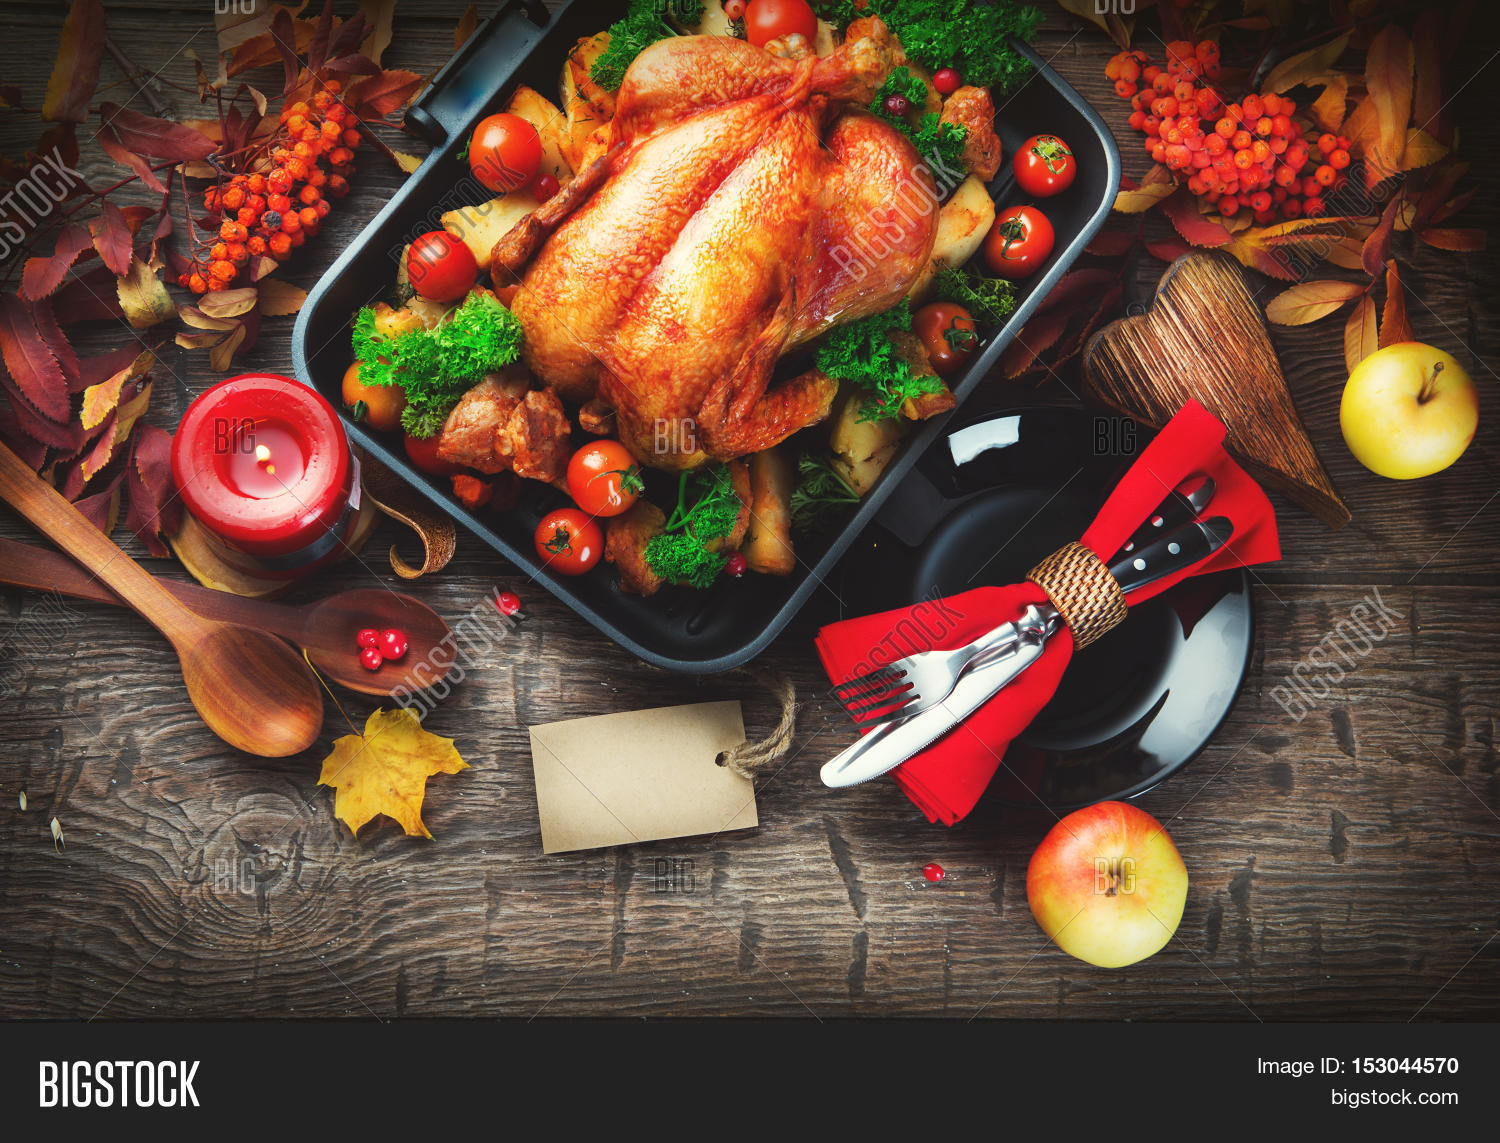 Thanksgiving Dinner Image Photo Free Trial Bigstock